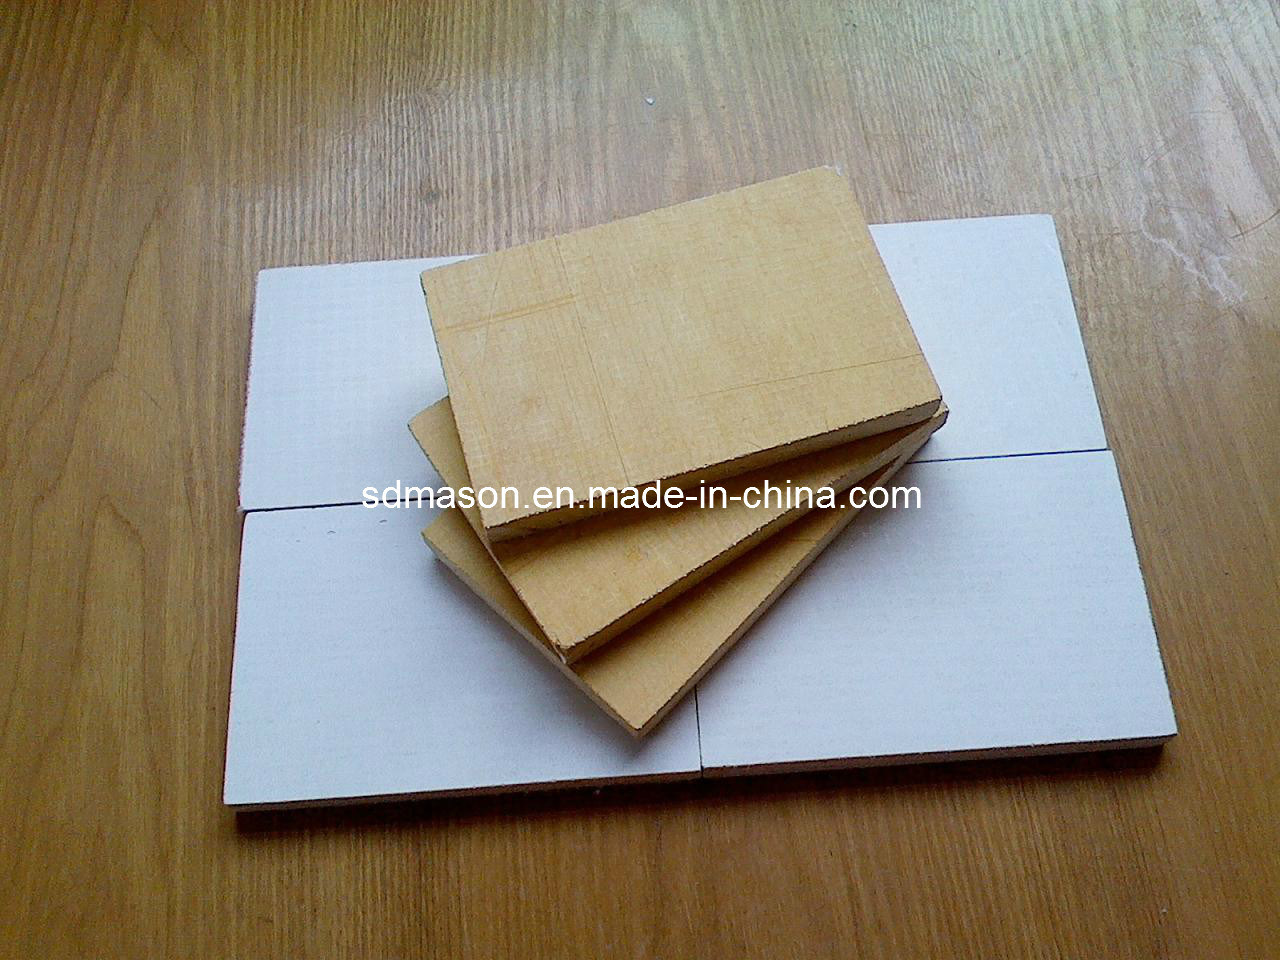 MGO Board/Magnesium Oxide Board for Dry Wall